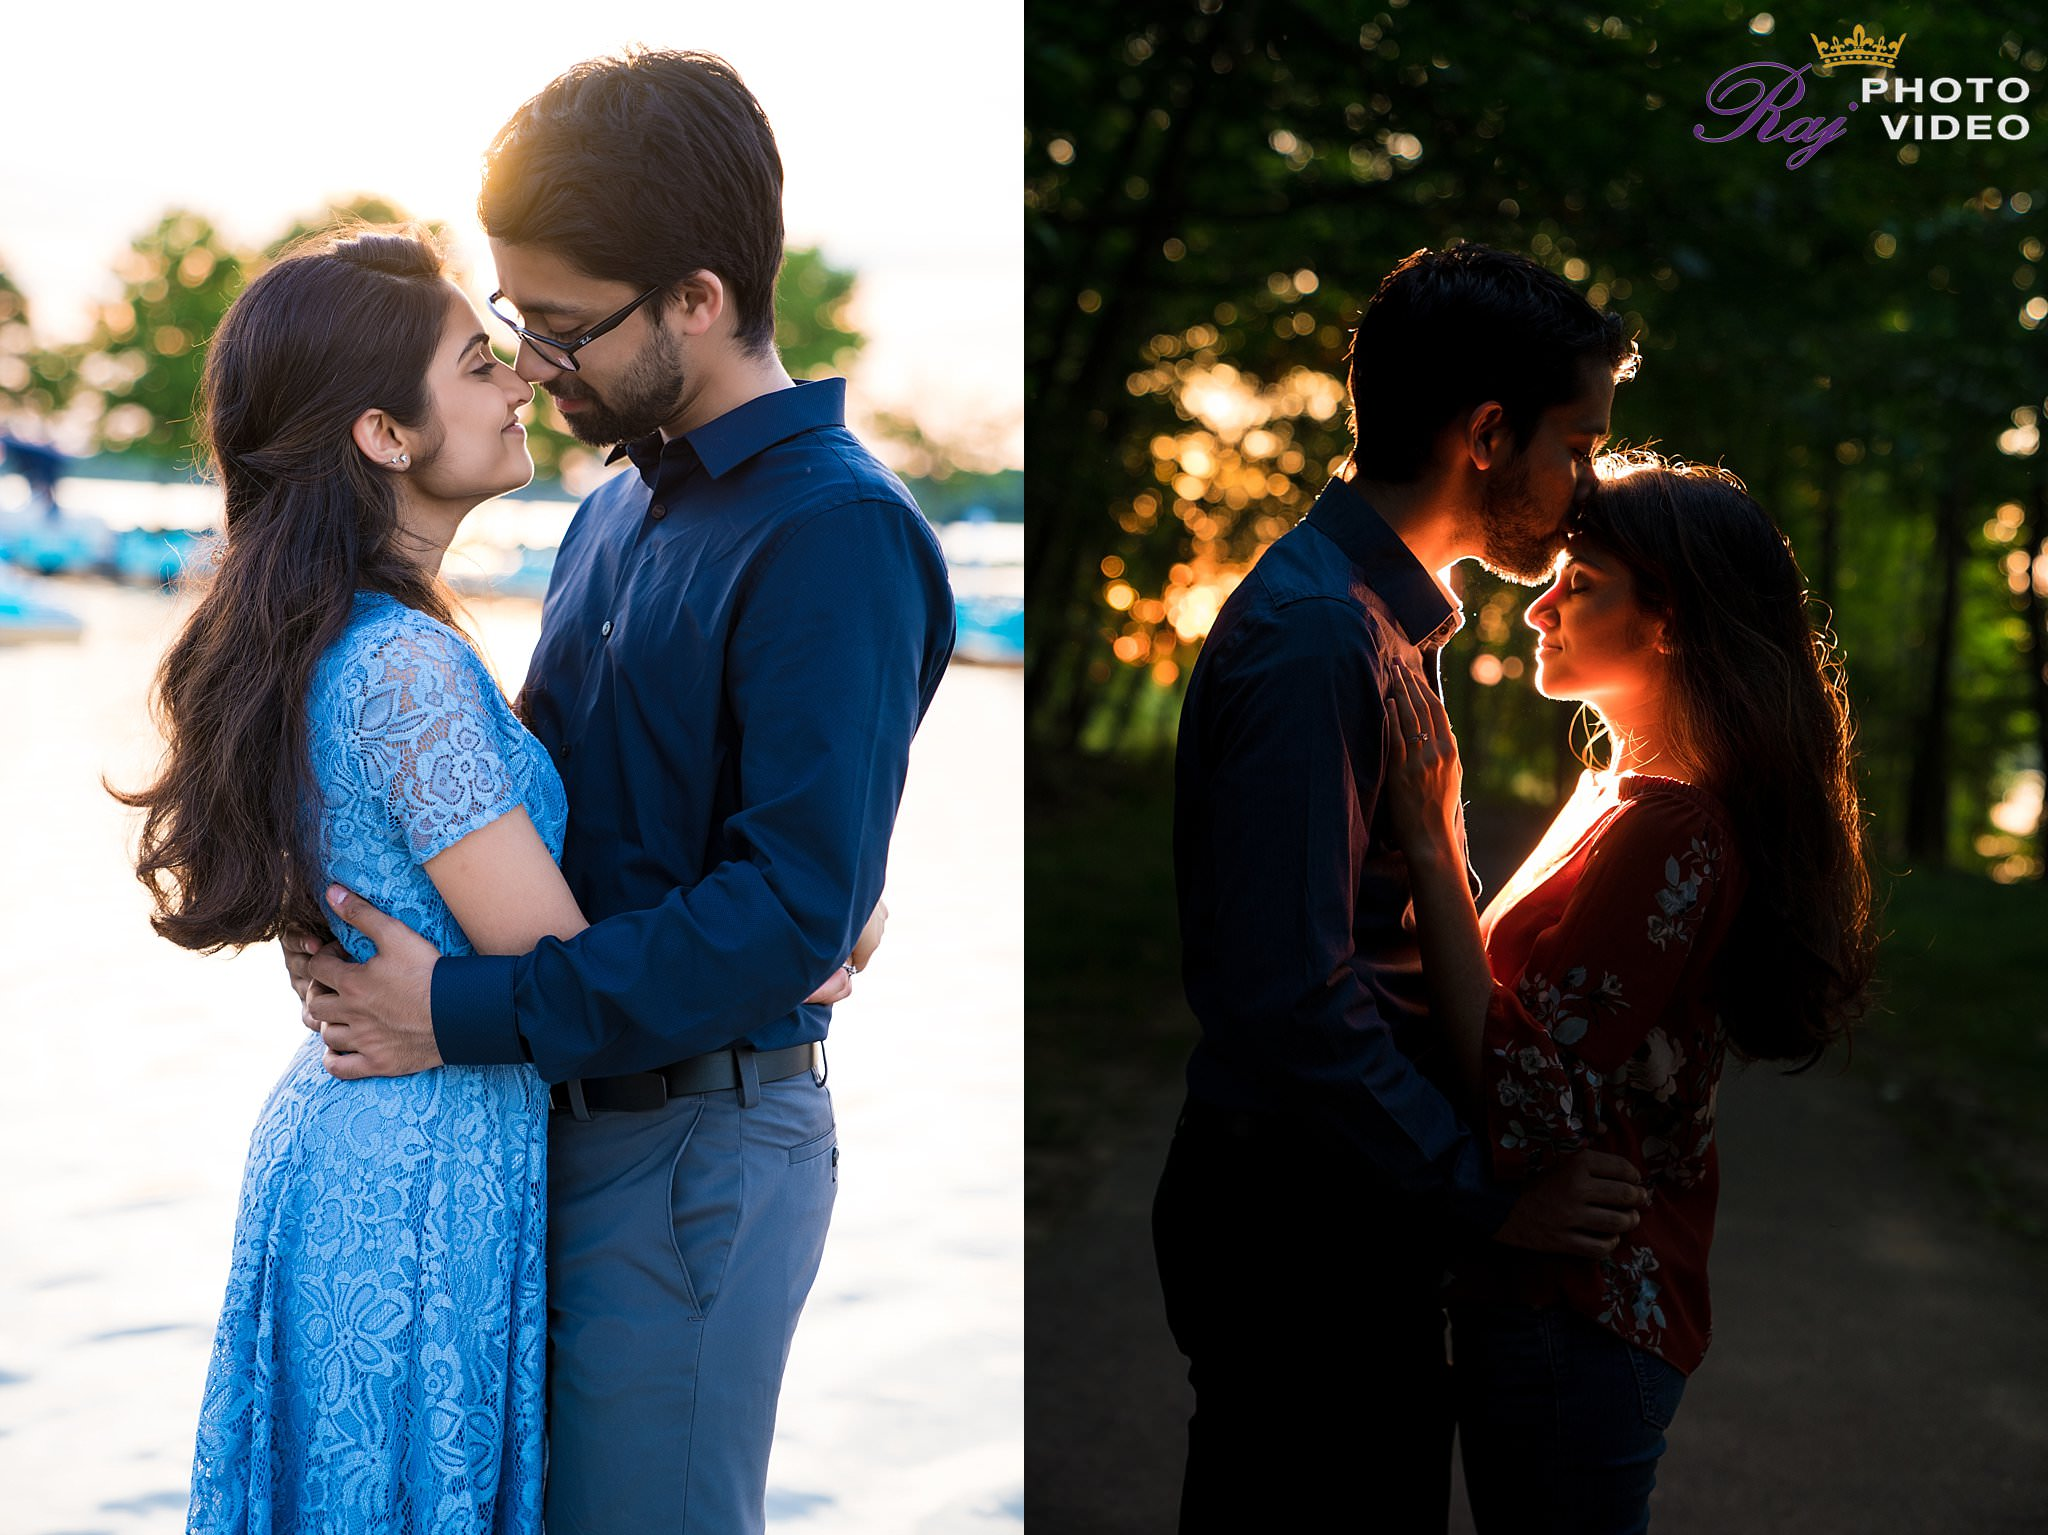 Mercer-County-Park-Engagement-Shoot-Shaili-Rahul-17_Raj_Photo_Video.jpg